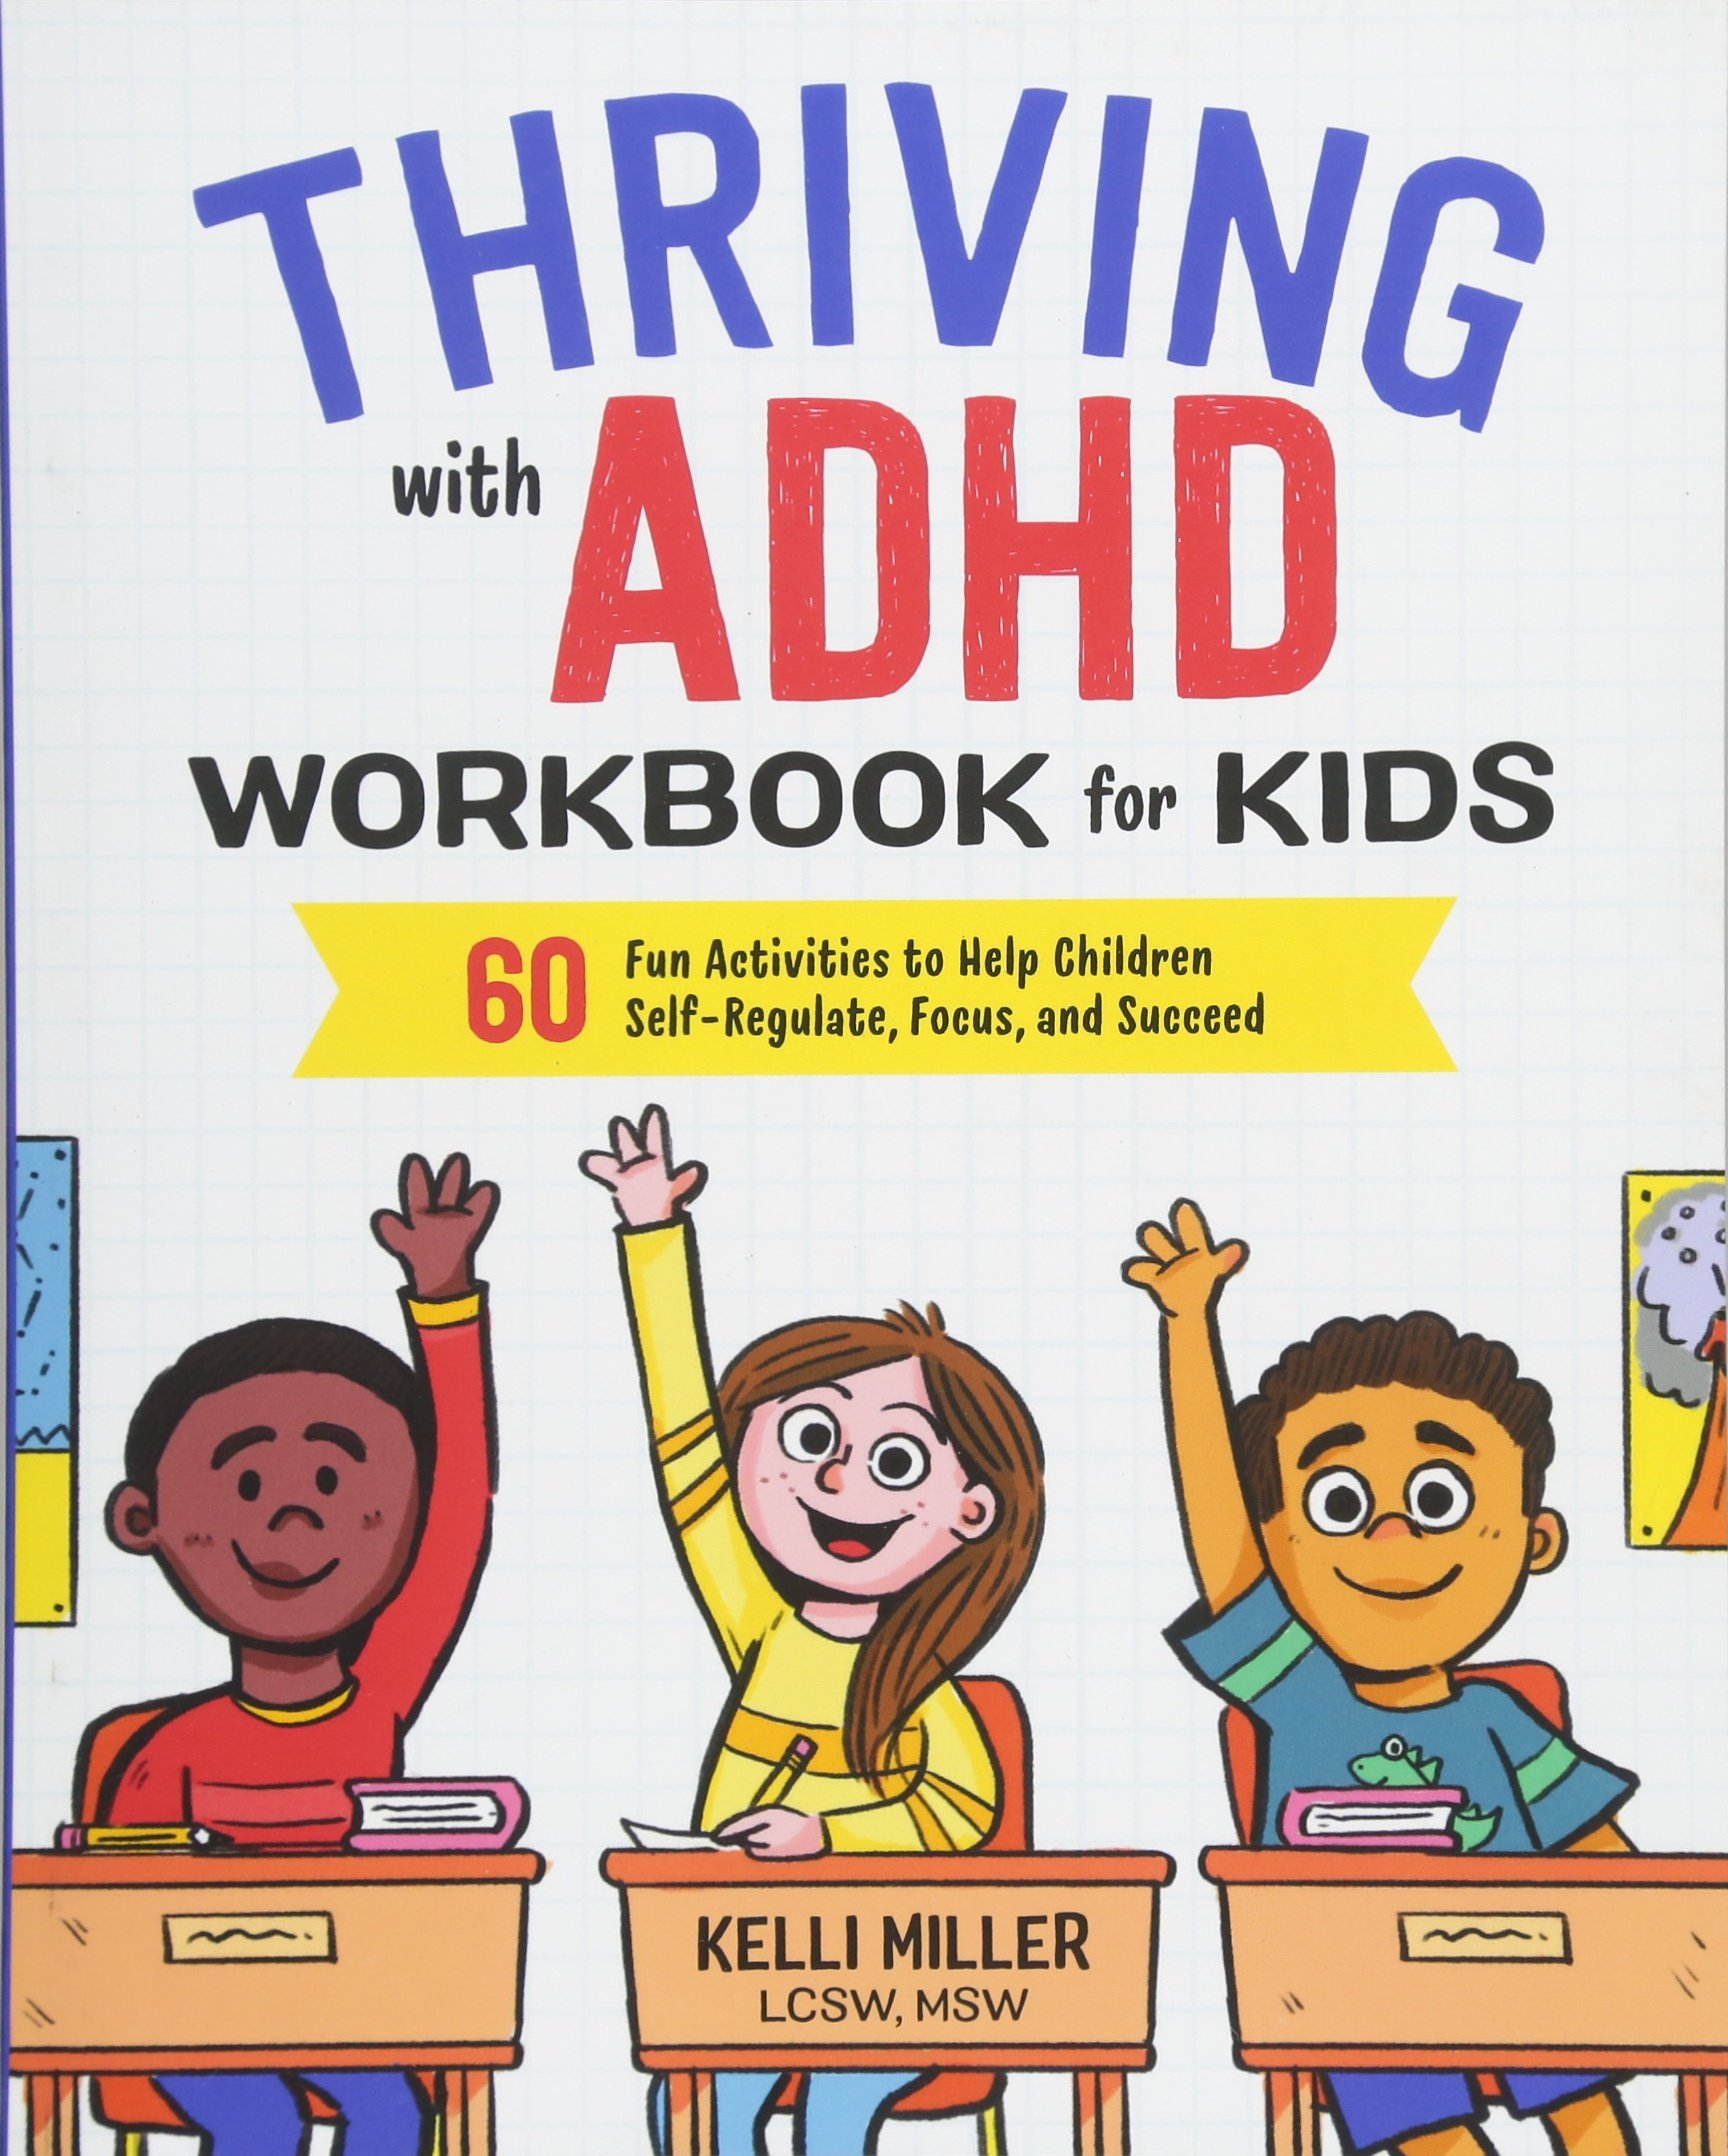 Thriving With Adhd Workbook For Kids 60 Fun Activities To